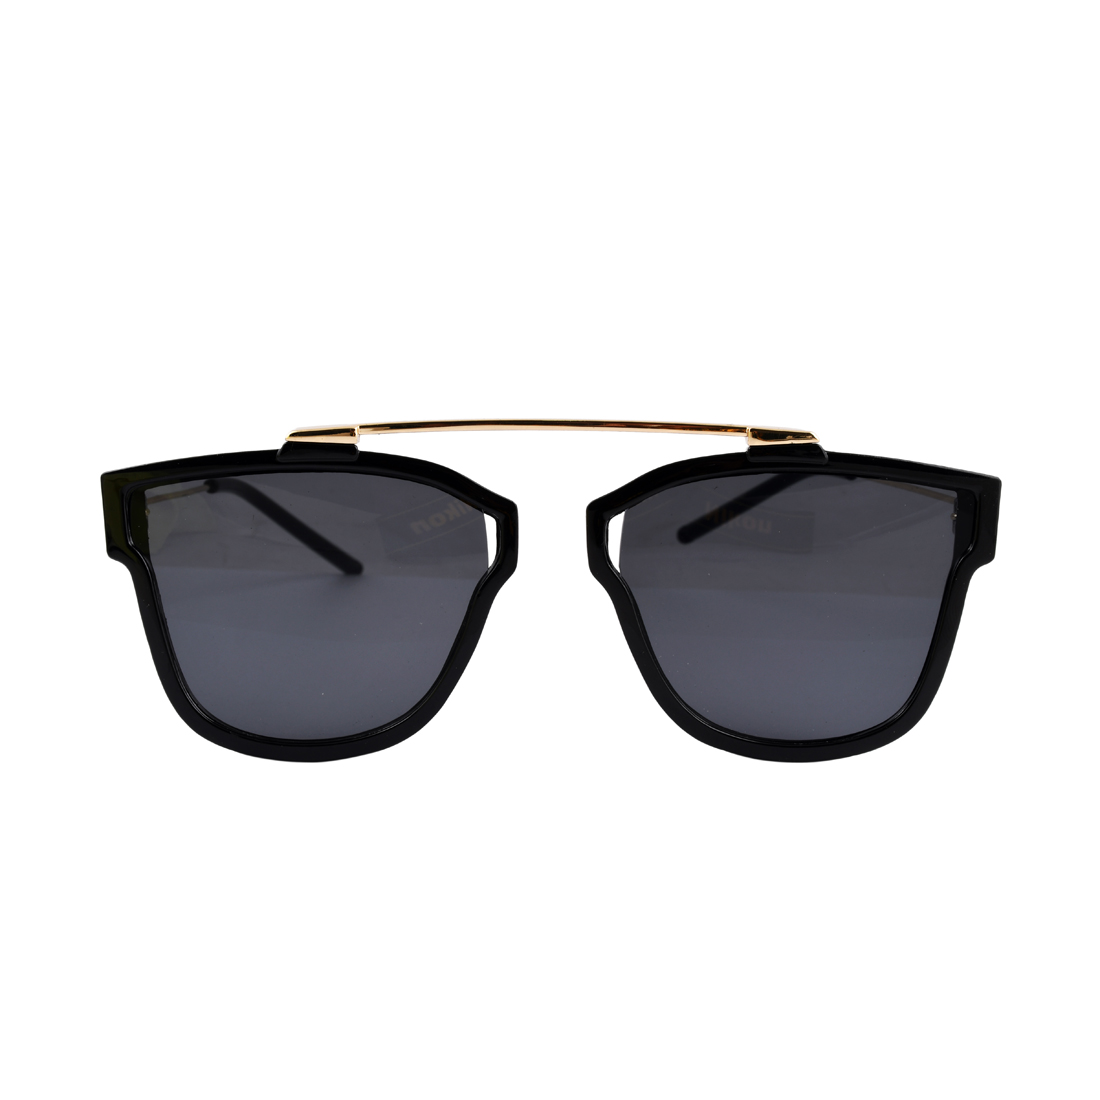 Black with Golden Wayfarer